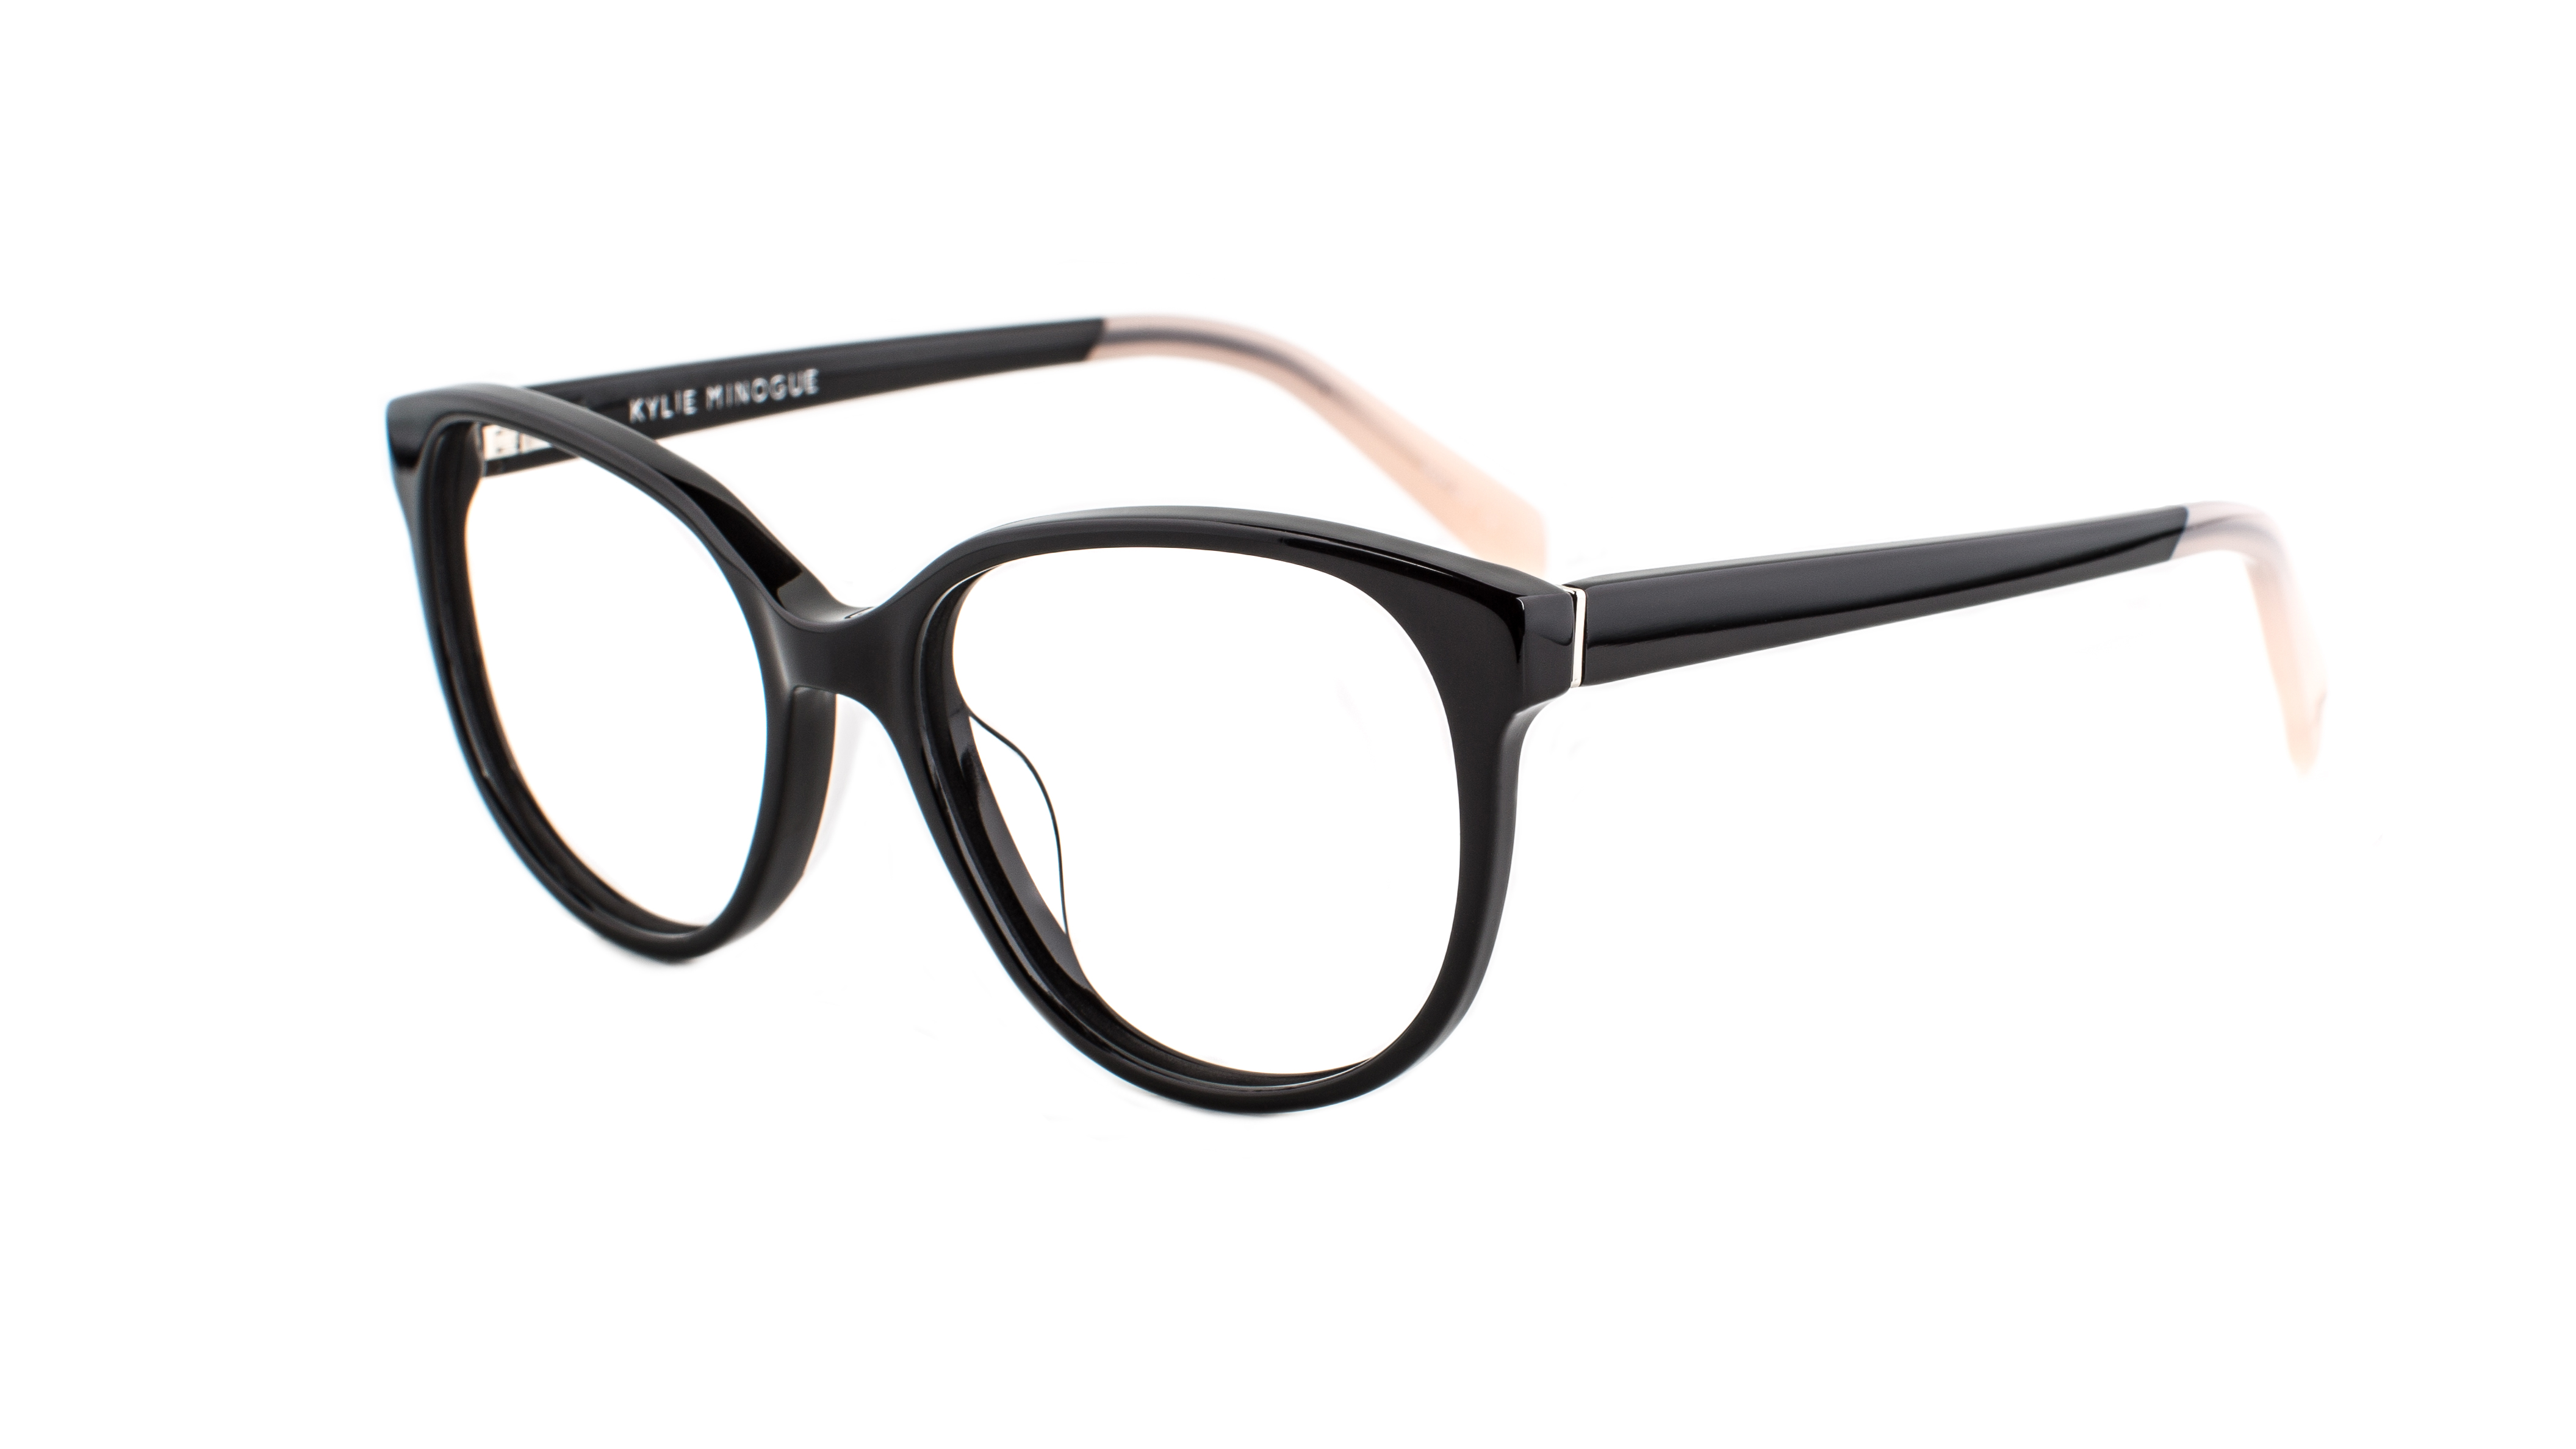 Kylie Minogue Eyewear_Kylie 11_SKU 30520264_RRP 2 pairs from $369 (2)